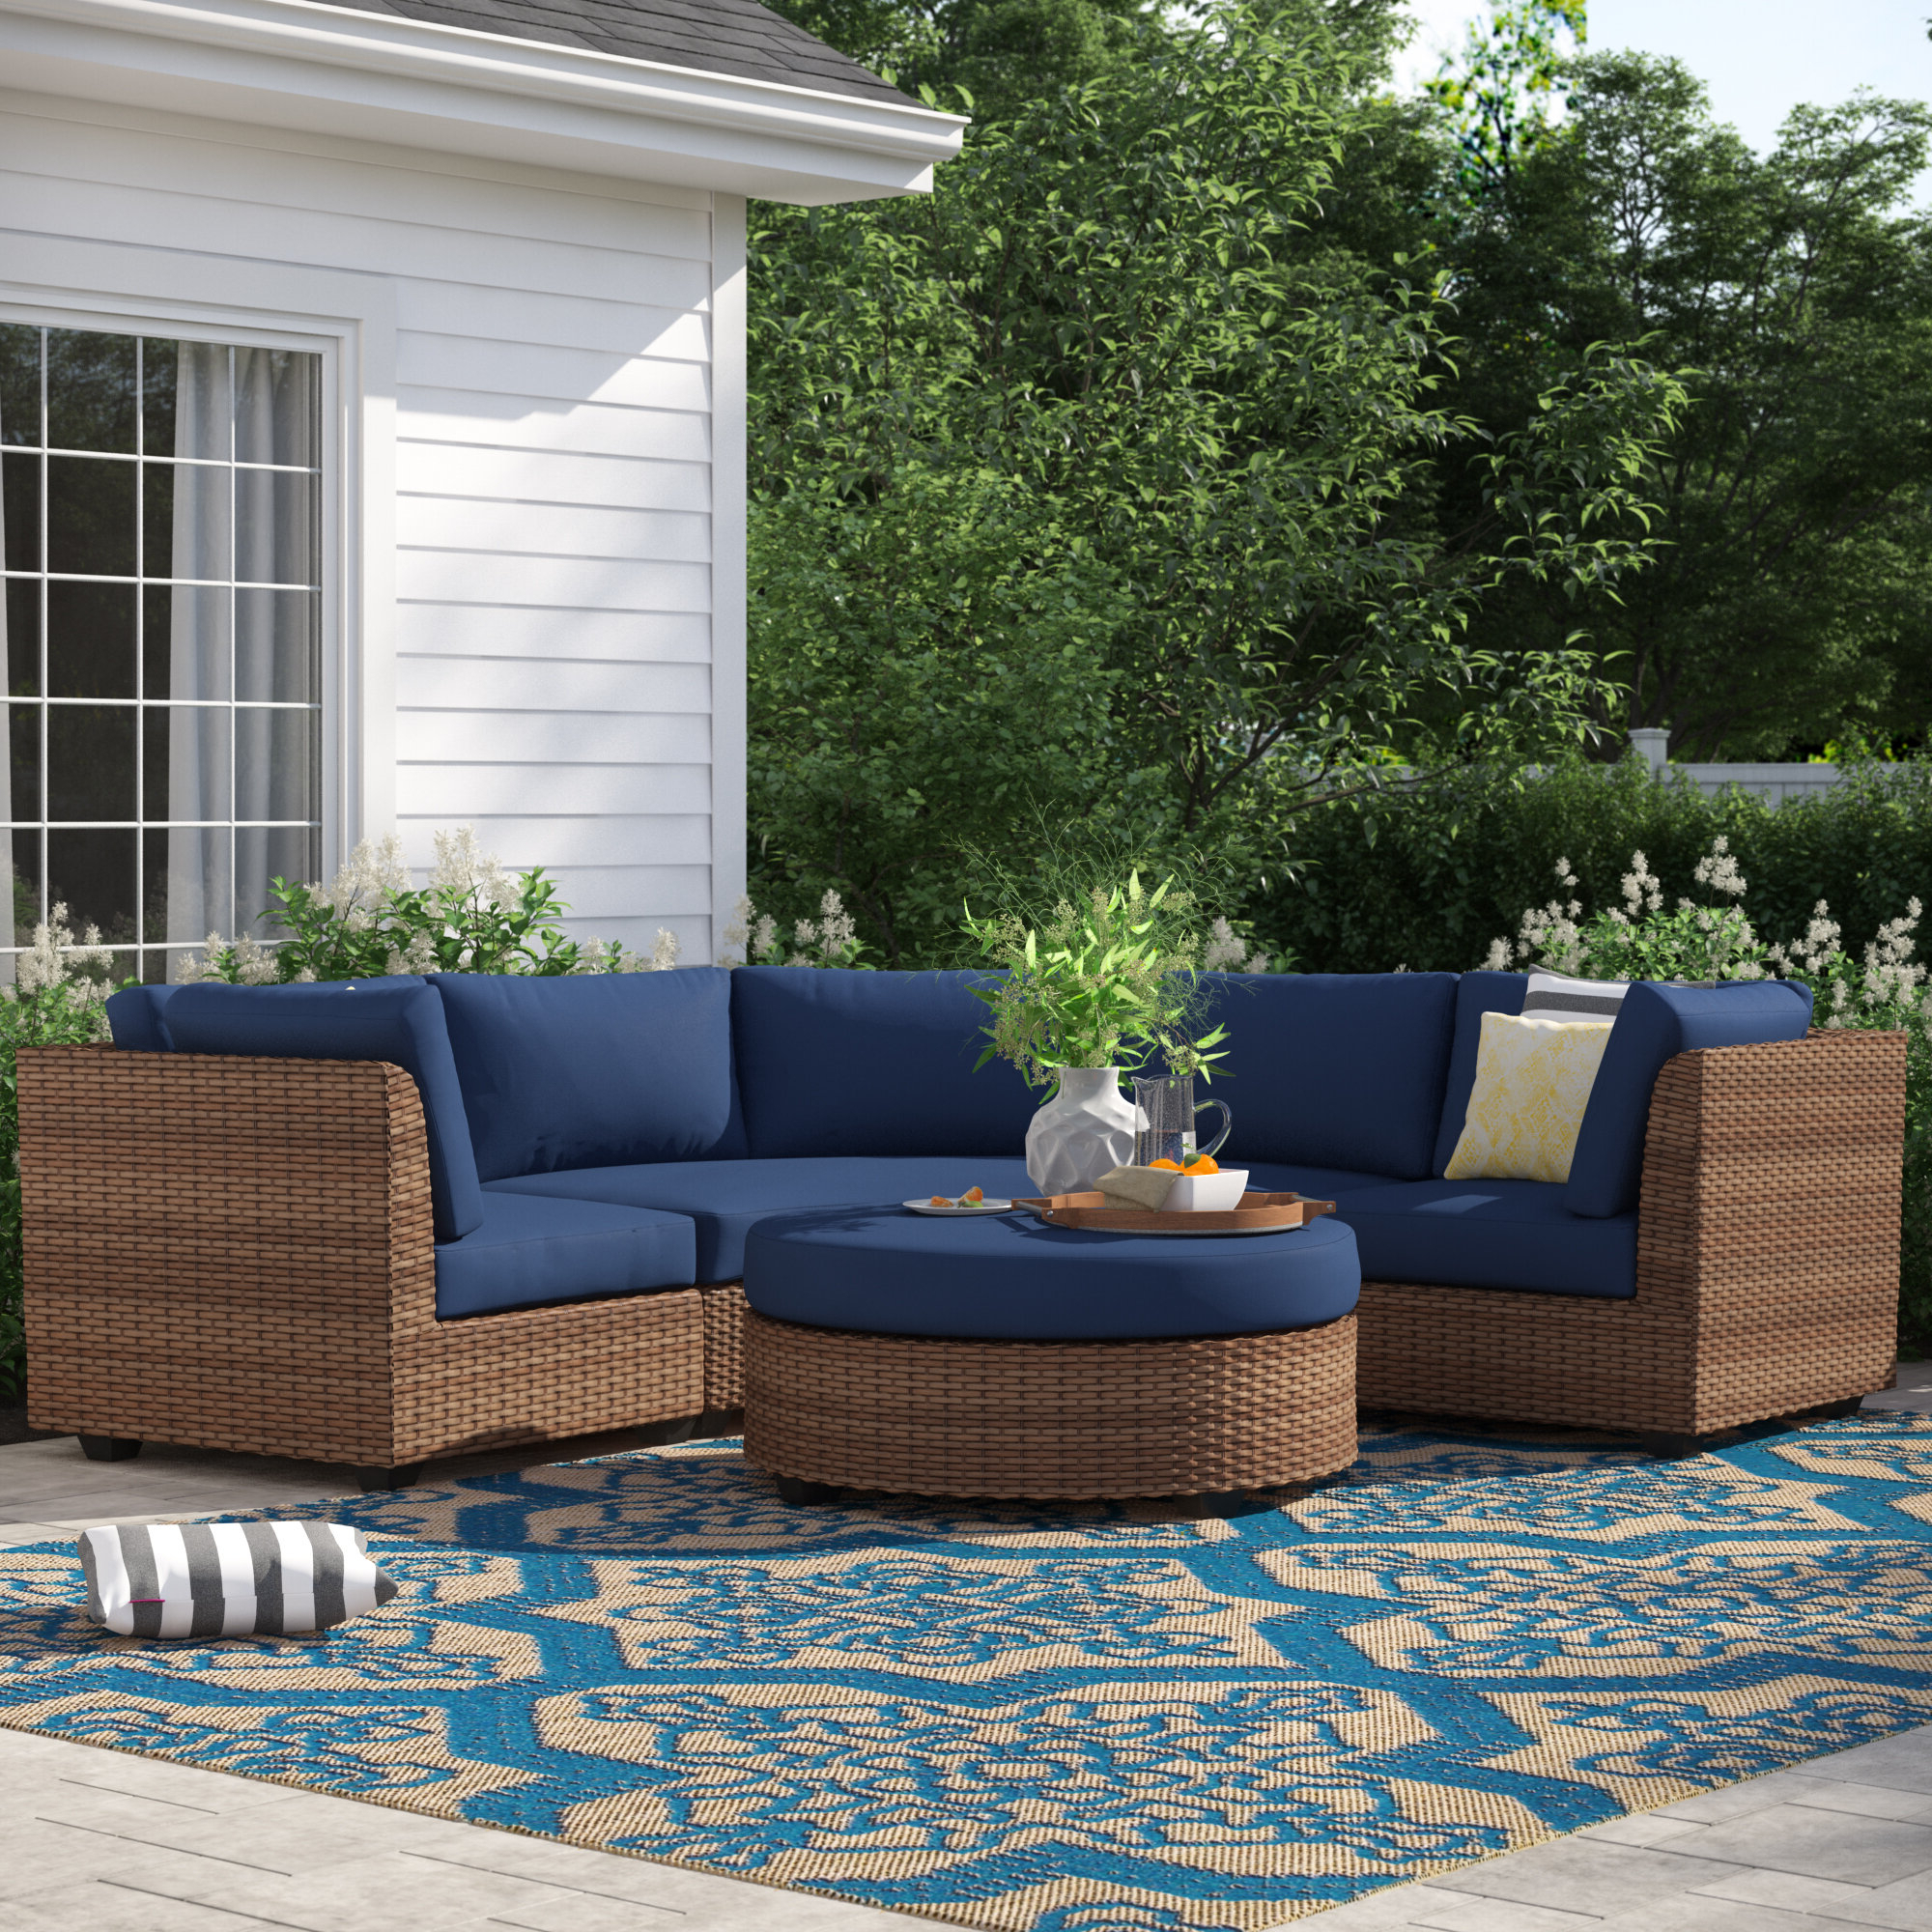 Widely Used Waterbury 4 Piece Rattan Sectional Seating Group With Cushions Within Waterbury Curved Armless Sofa With Cushions (View 5 of 20)